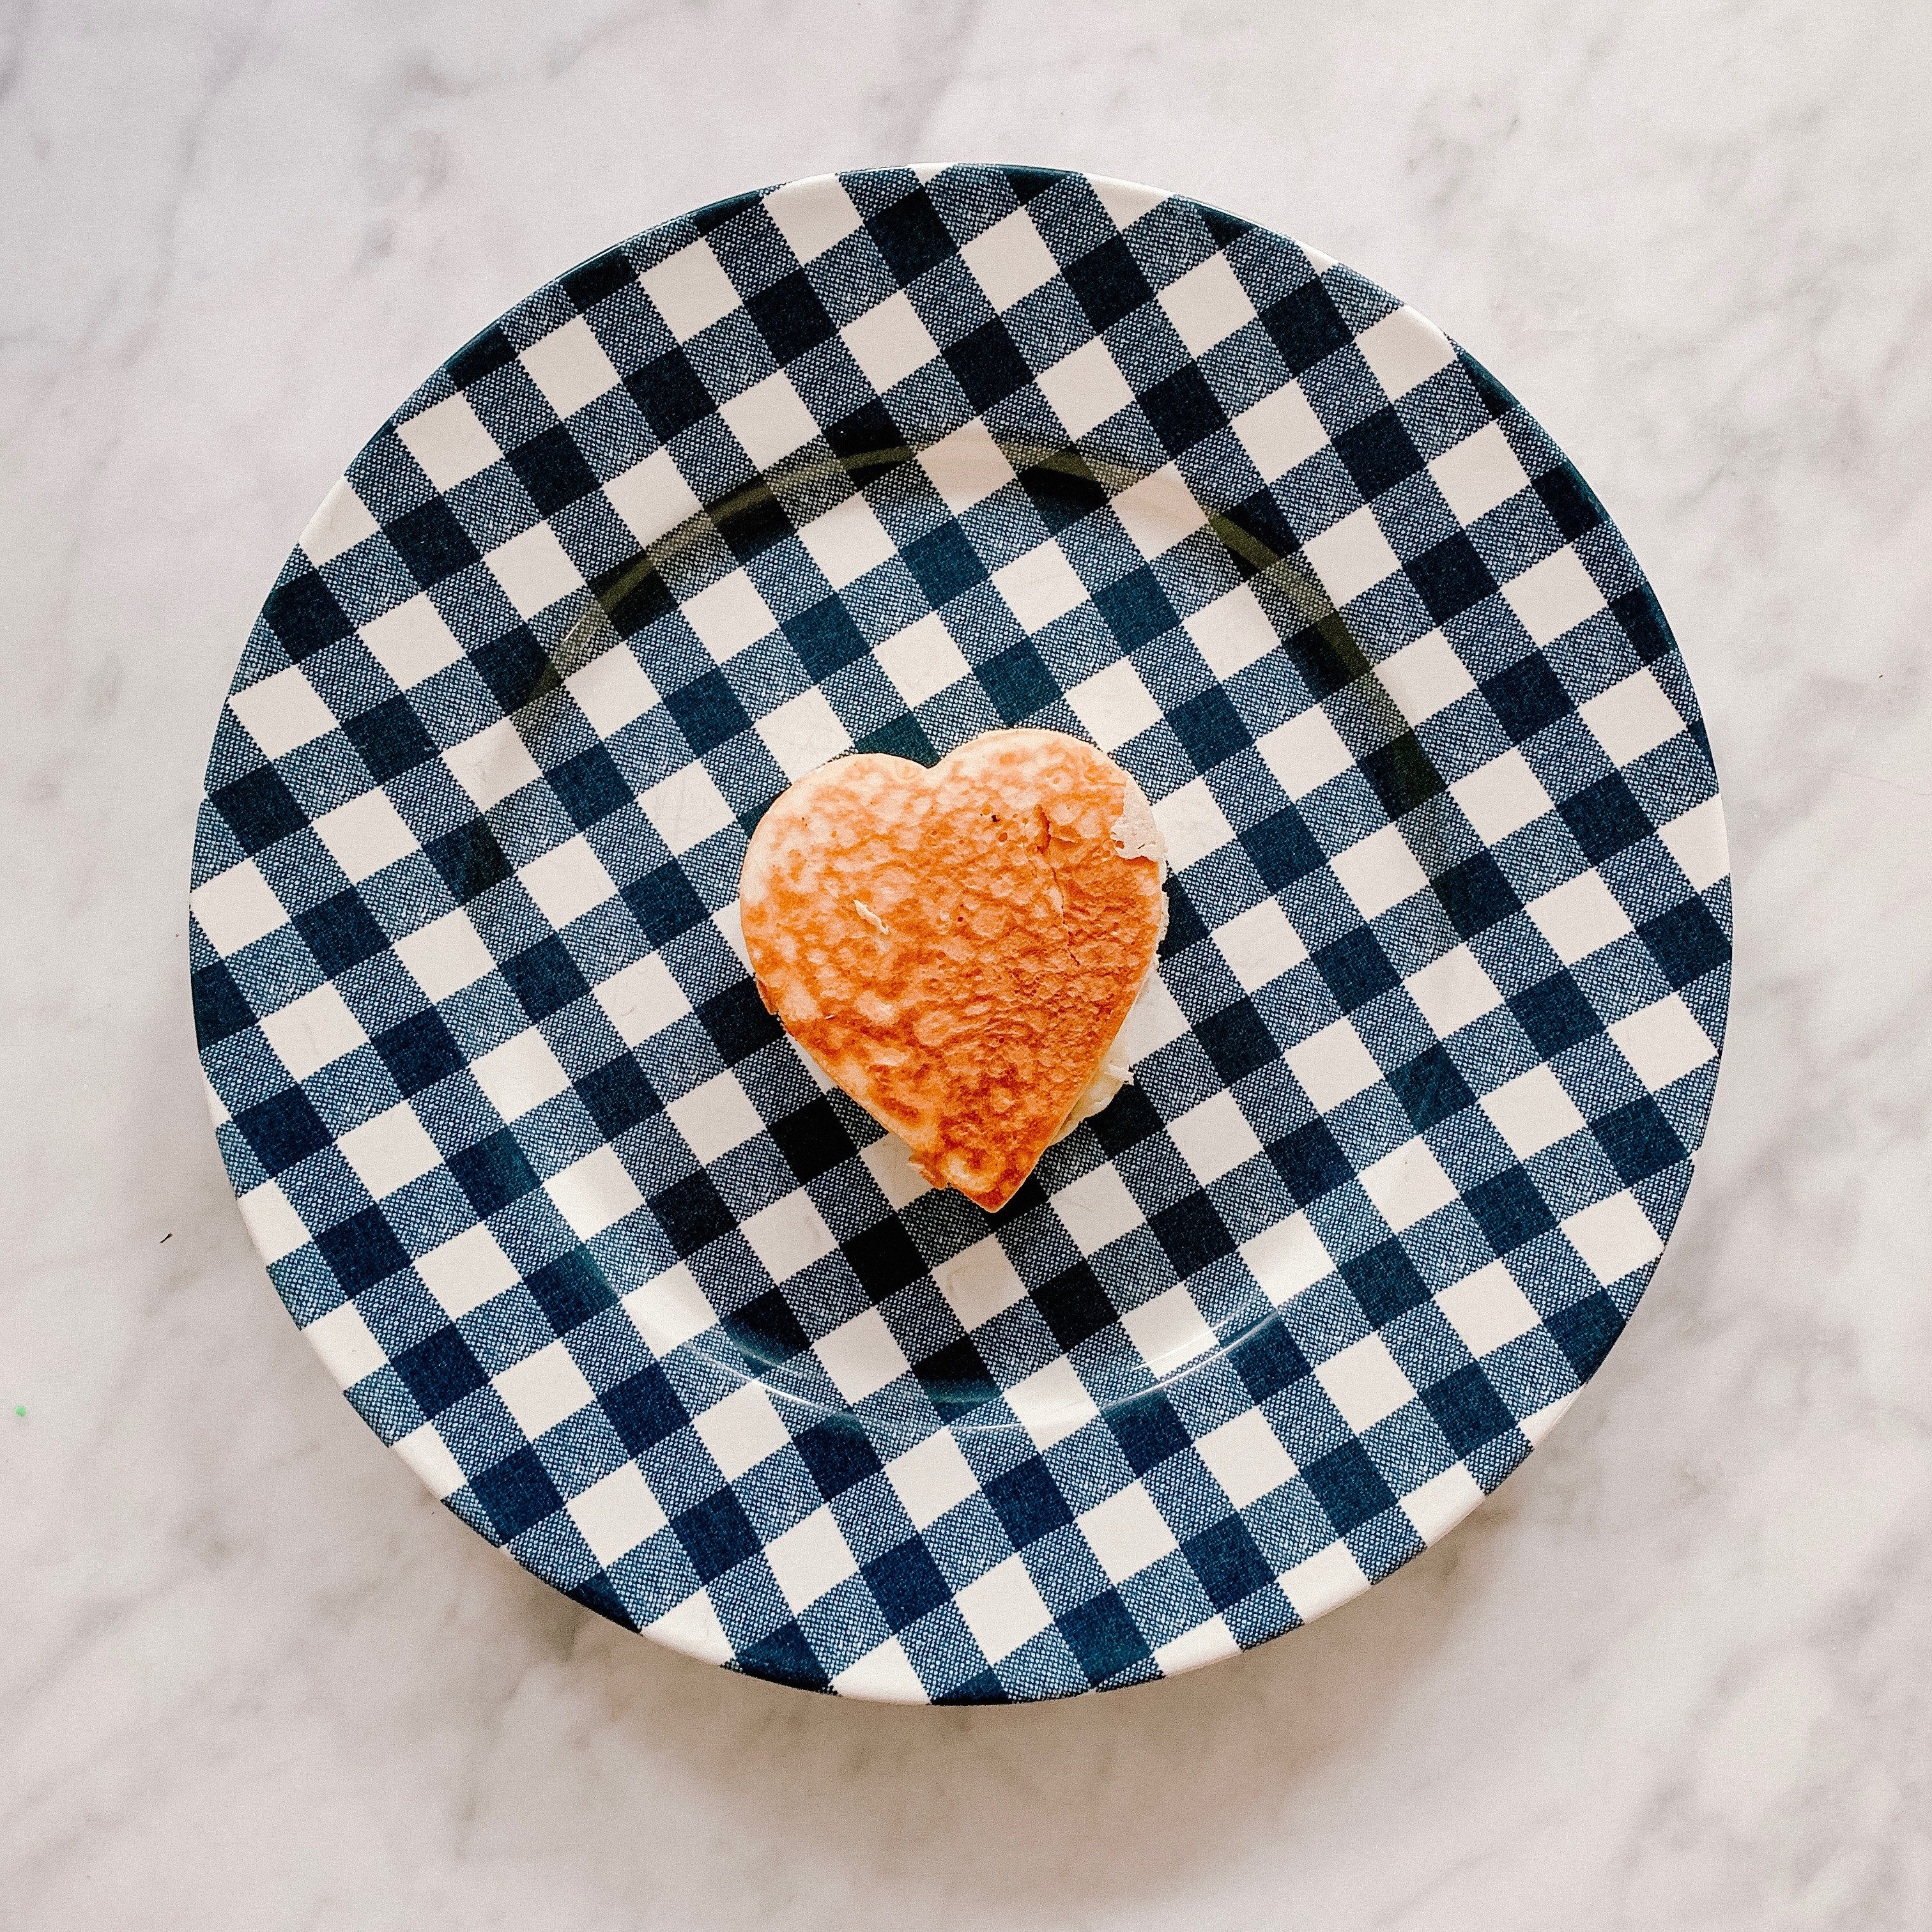 Heart Pancake and Gingham Plate